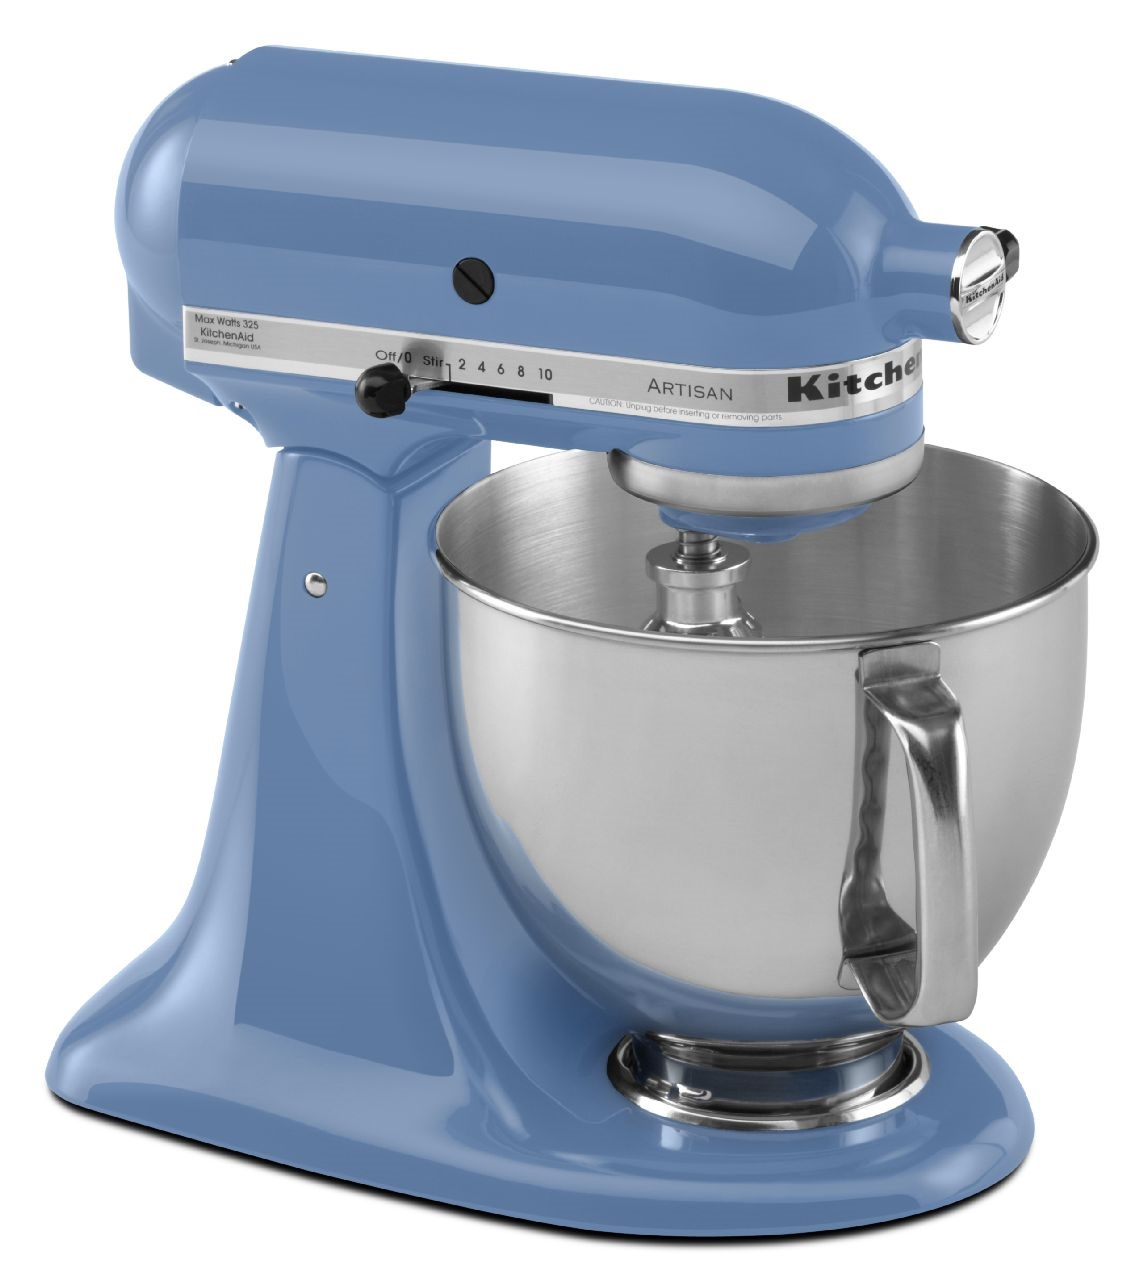 Dec 05,  · The KitchenAid Artisan series includes some of our best-selling stand mixers, and with good reason: these Artisan mixers have a watt motor, 5-quart bowl with ergonomic handle, pouring shield, and a tilt-back mixer head design that provides easy access to bowl and hosting350.tk Rating: % positive.